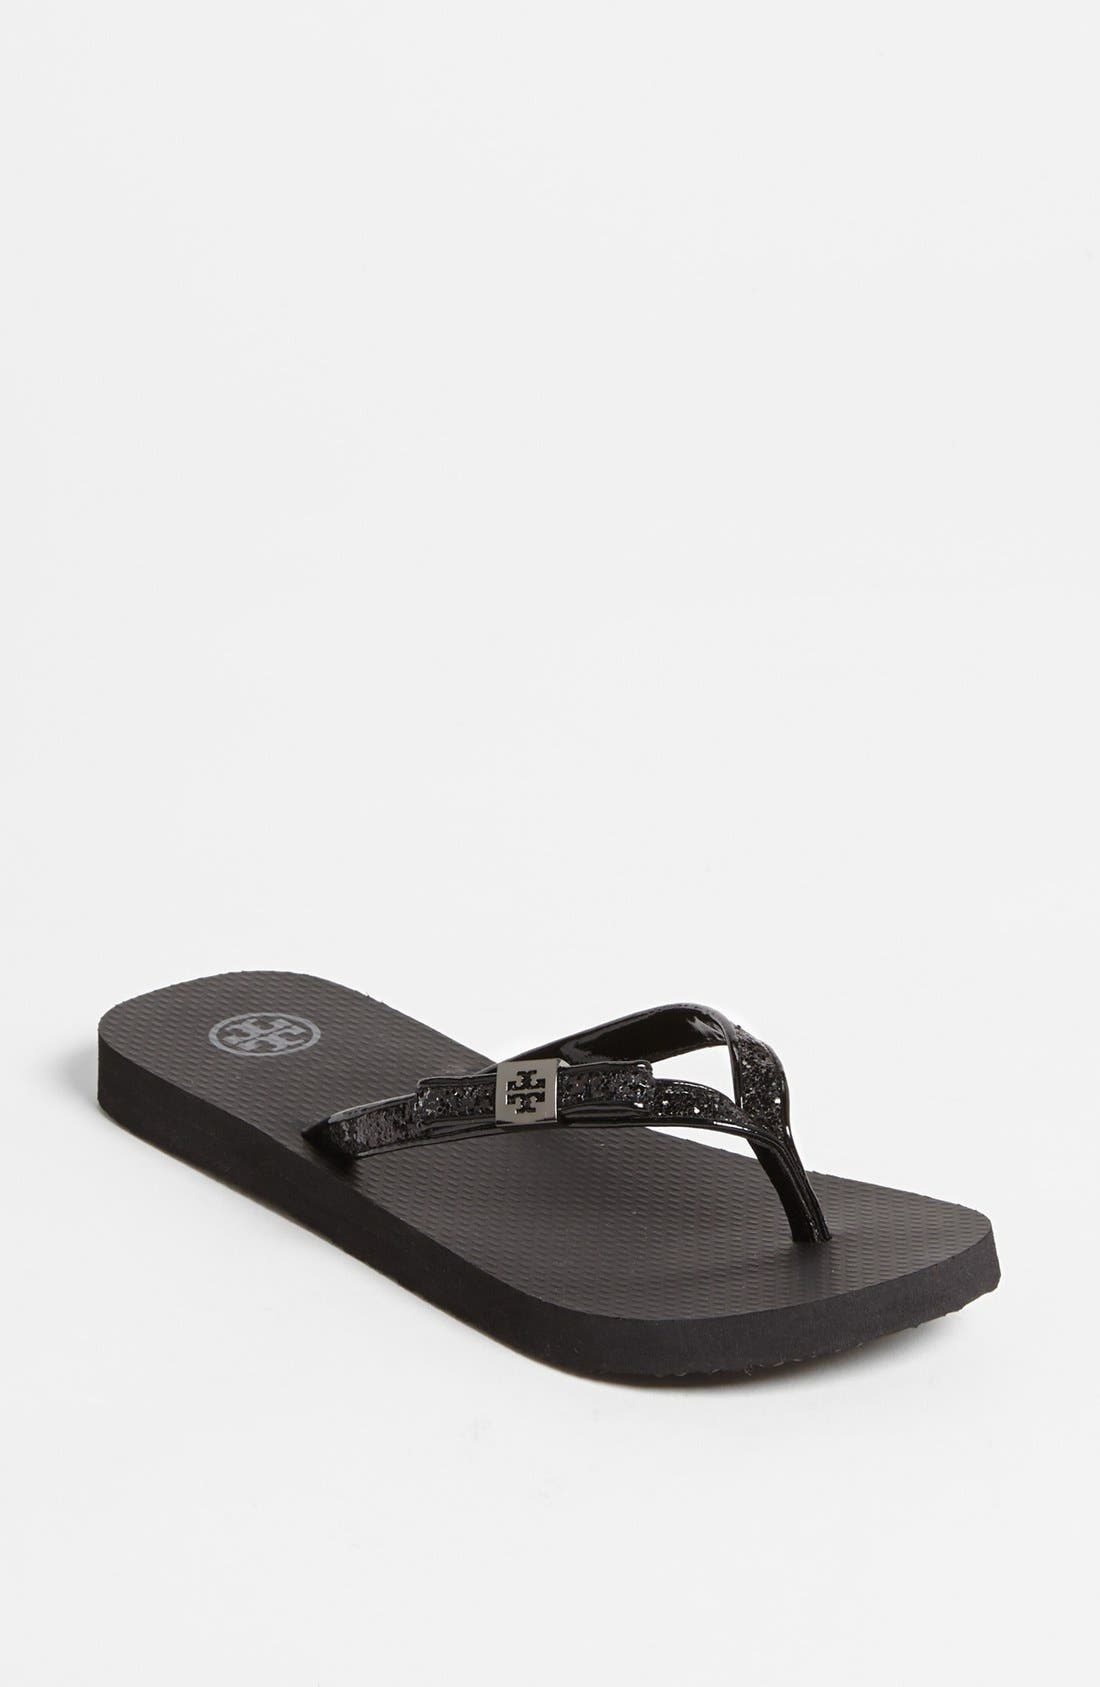 Main Image - Tory Burch 'Carey' Flip Flop